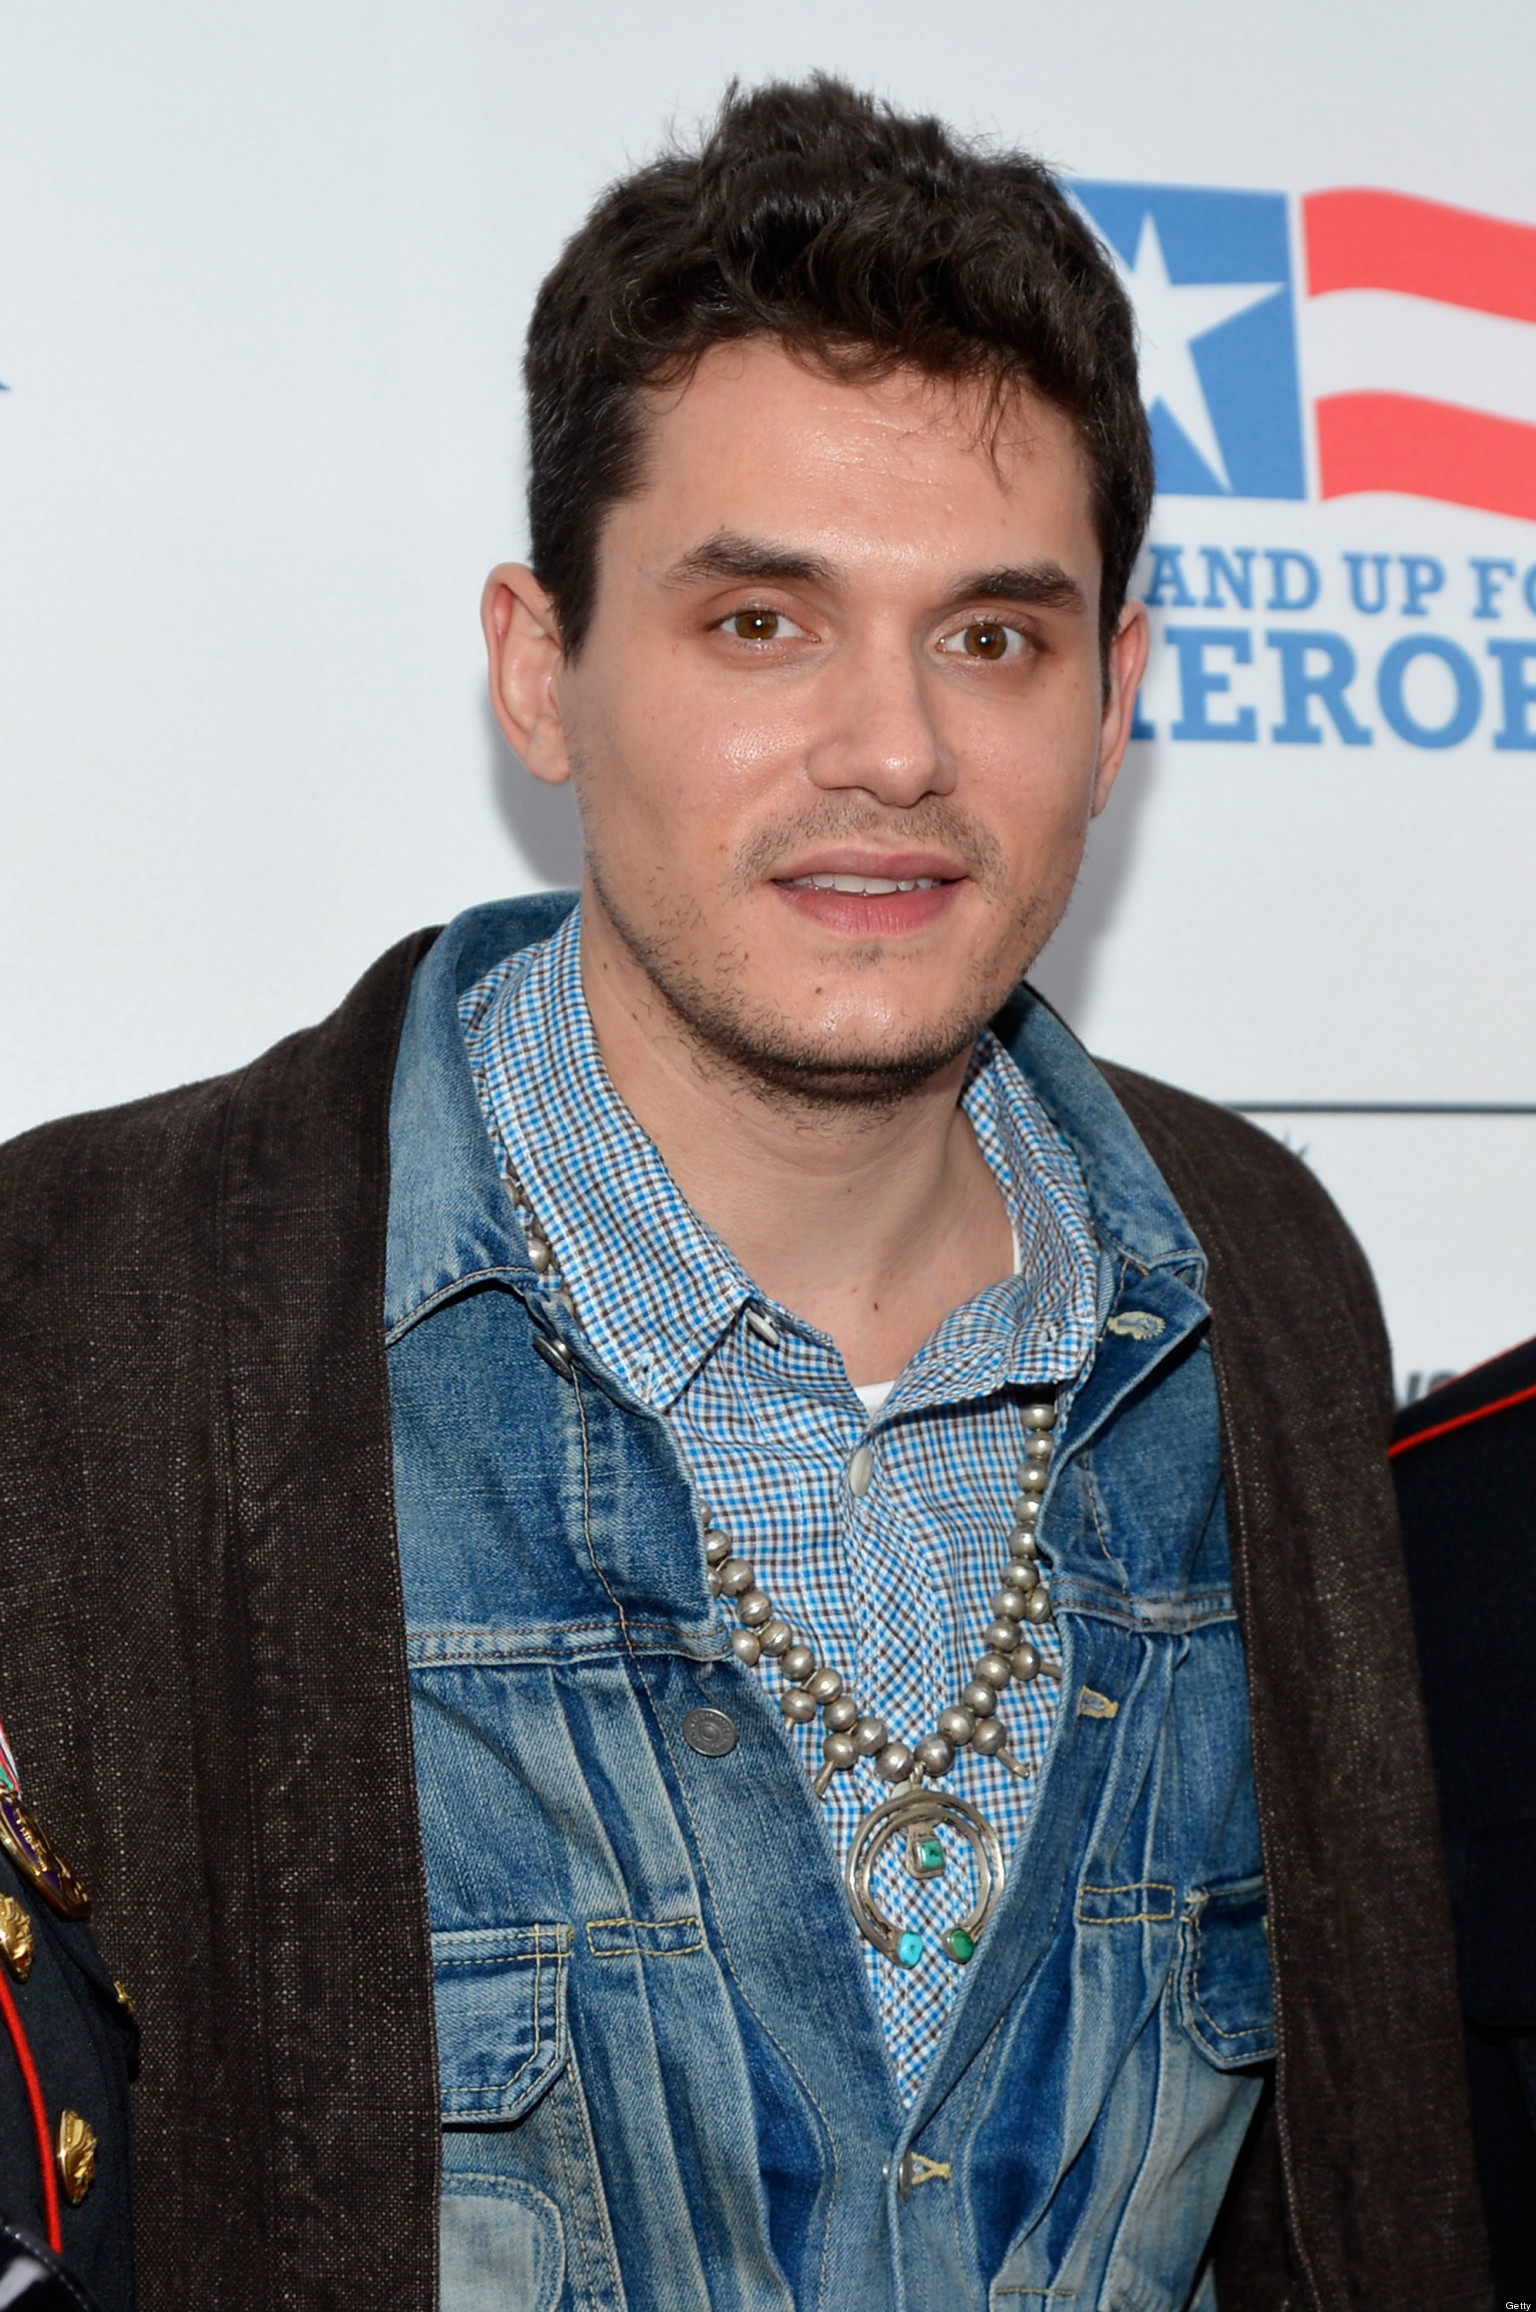 <b>John Mayer's</b> CBS Sunday Morning Interview: 'I Was Just A Jerk' (VIDEO) | The ... - o-JOHN-MAYER-CBS-facebook